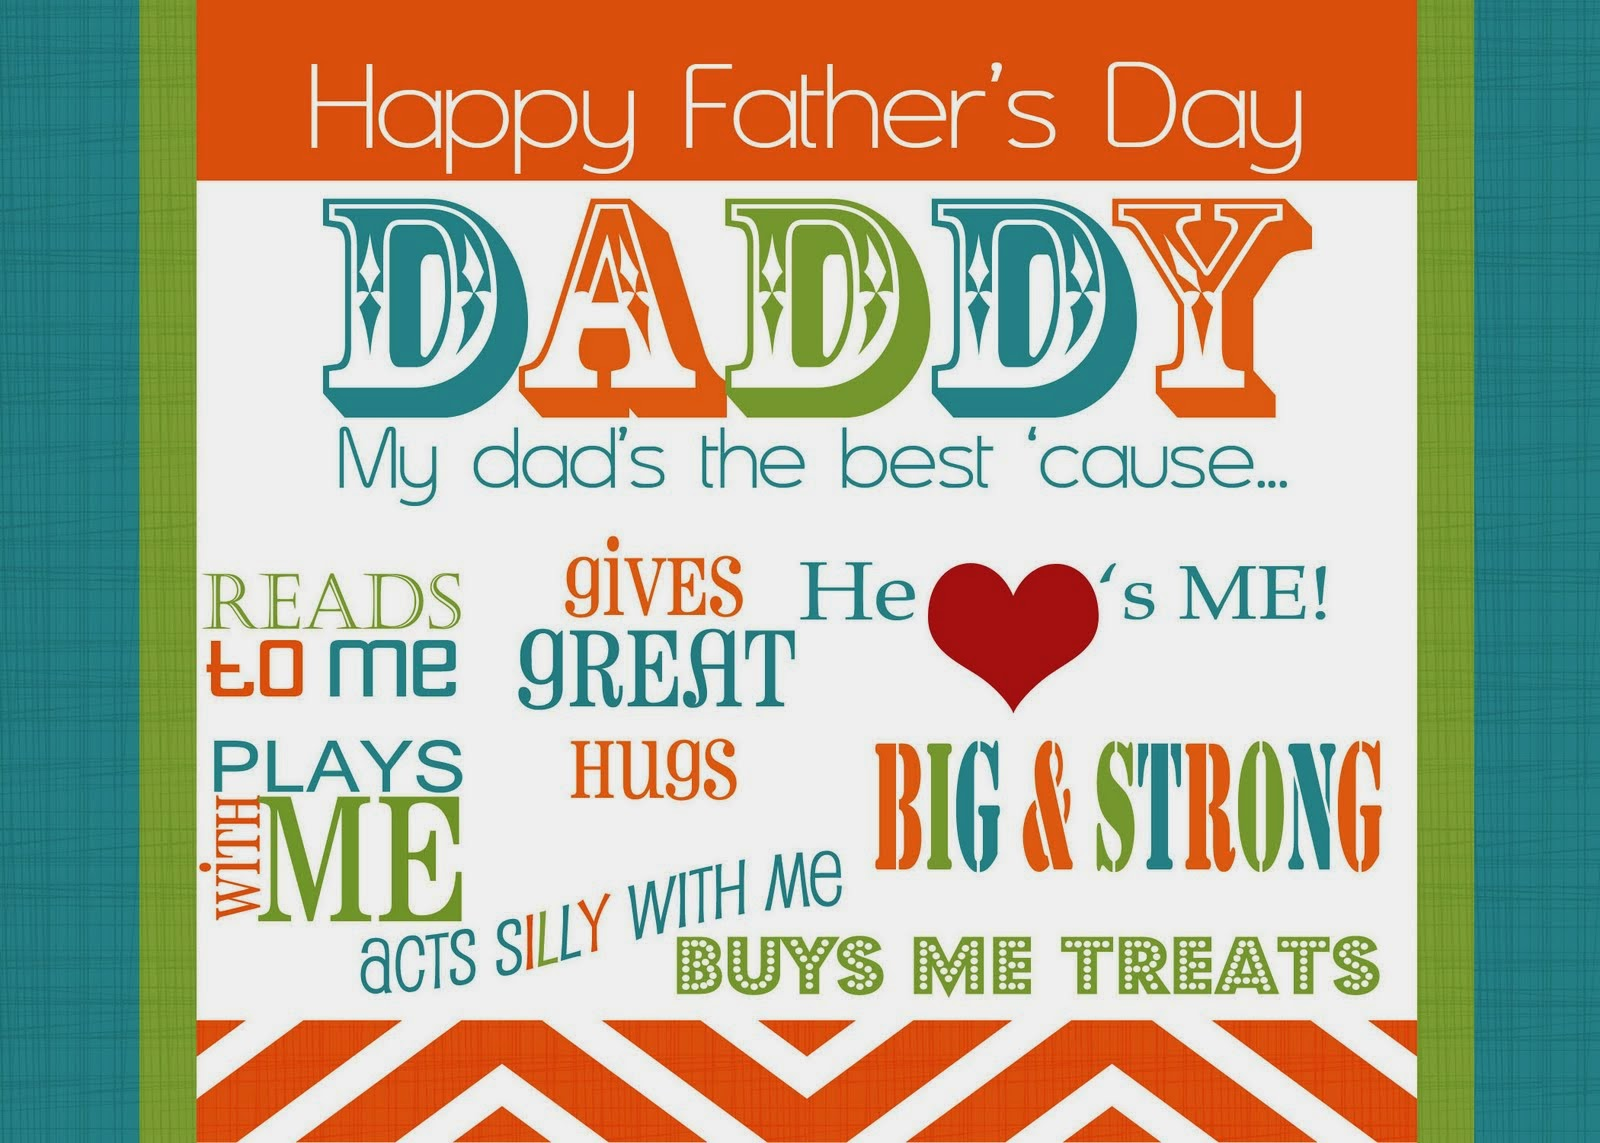 a comparison of daddy and happy fathers day by patrick middleton and sylvia plaths daddy The iron giant is a 1999 american animated science fiction film using both traditional animation and computer animation, produced by.